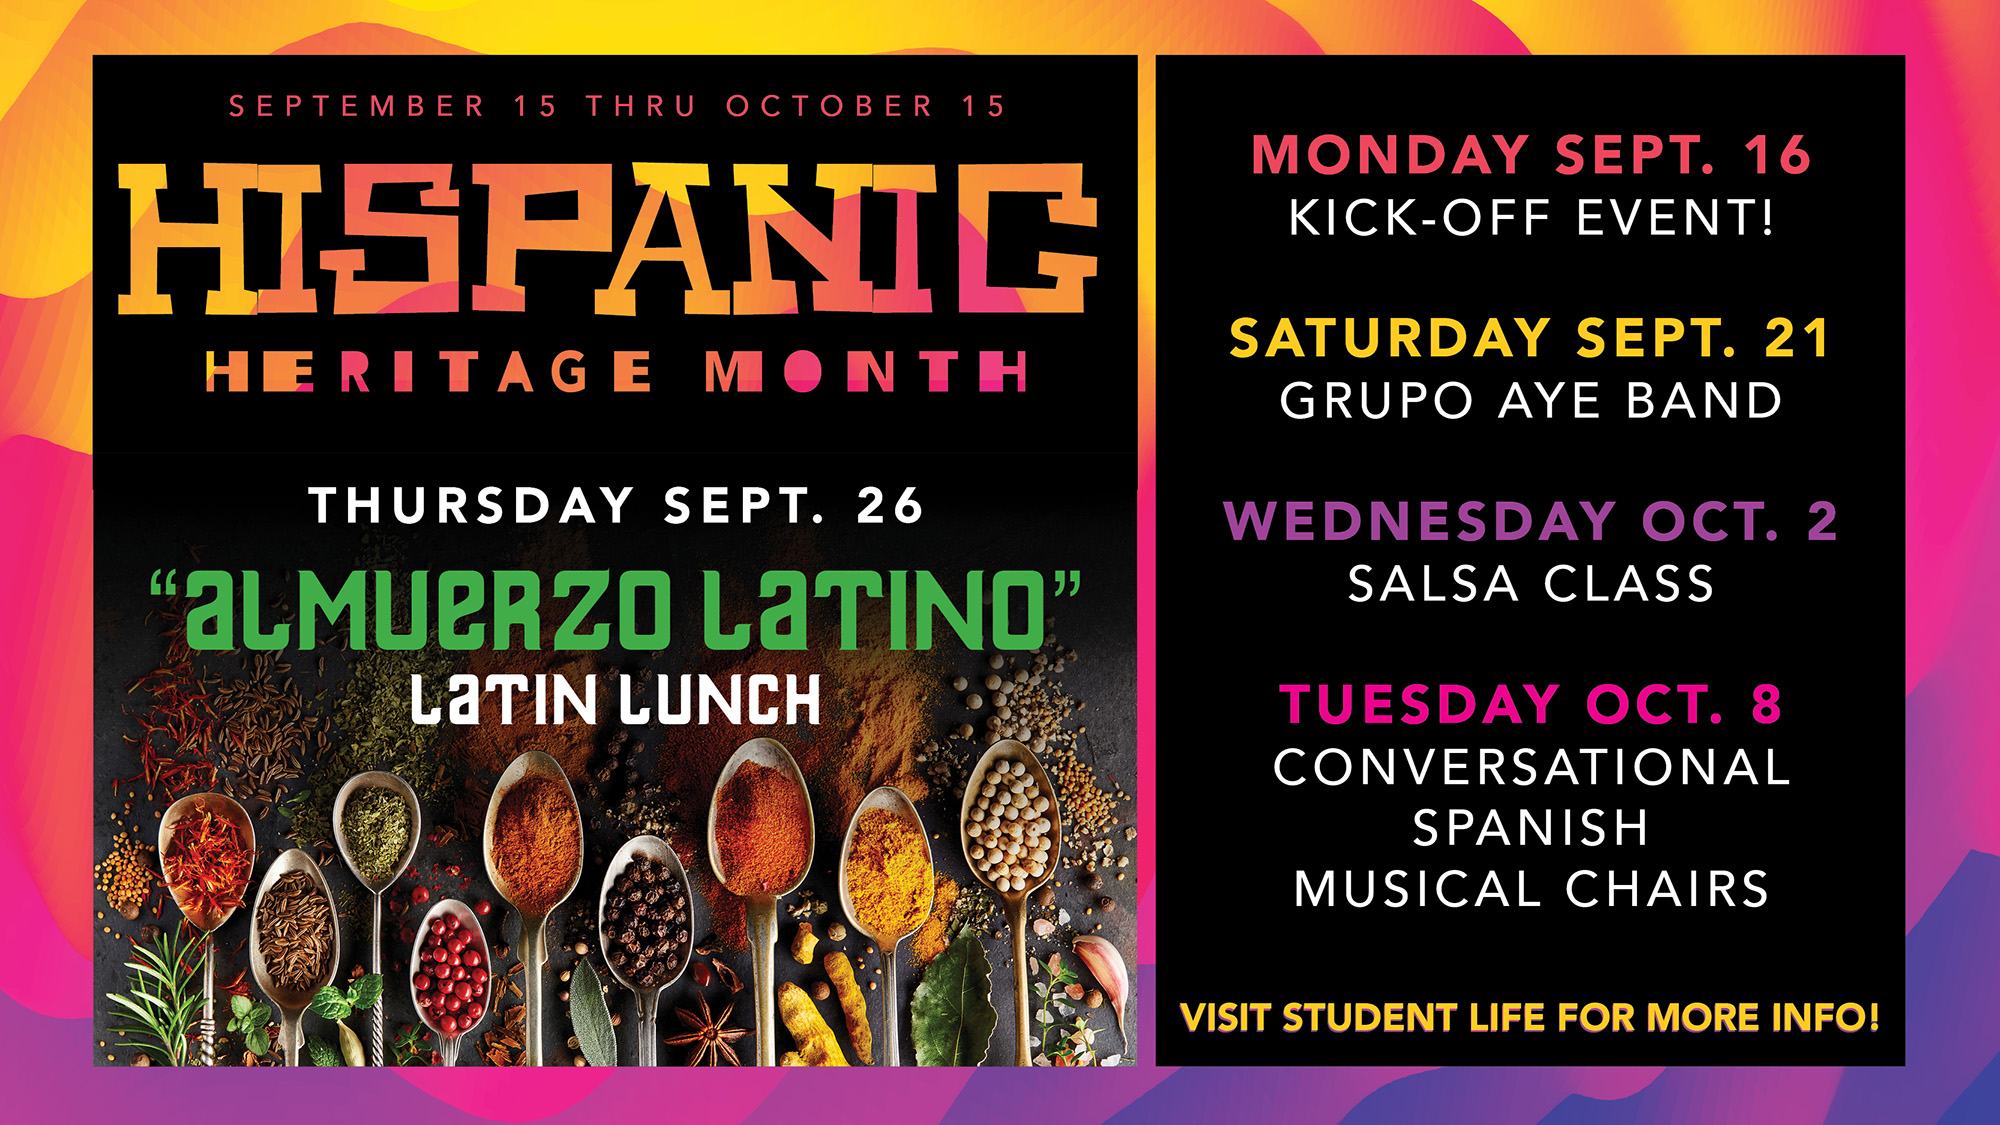 Kcc To Celebrate Hispanic Heritage Month With Events In